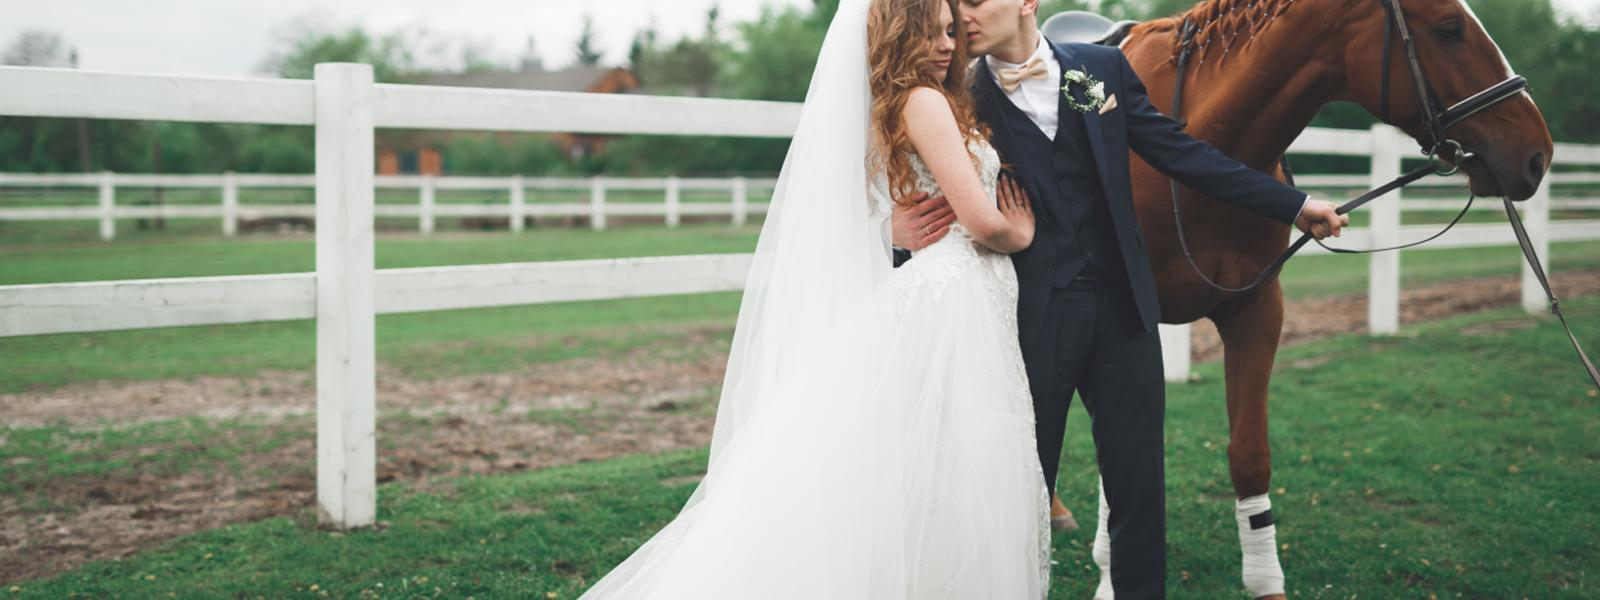 Unbridled elegance for your mane event – stable advice for the perfect equestrian wedding